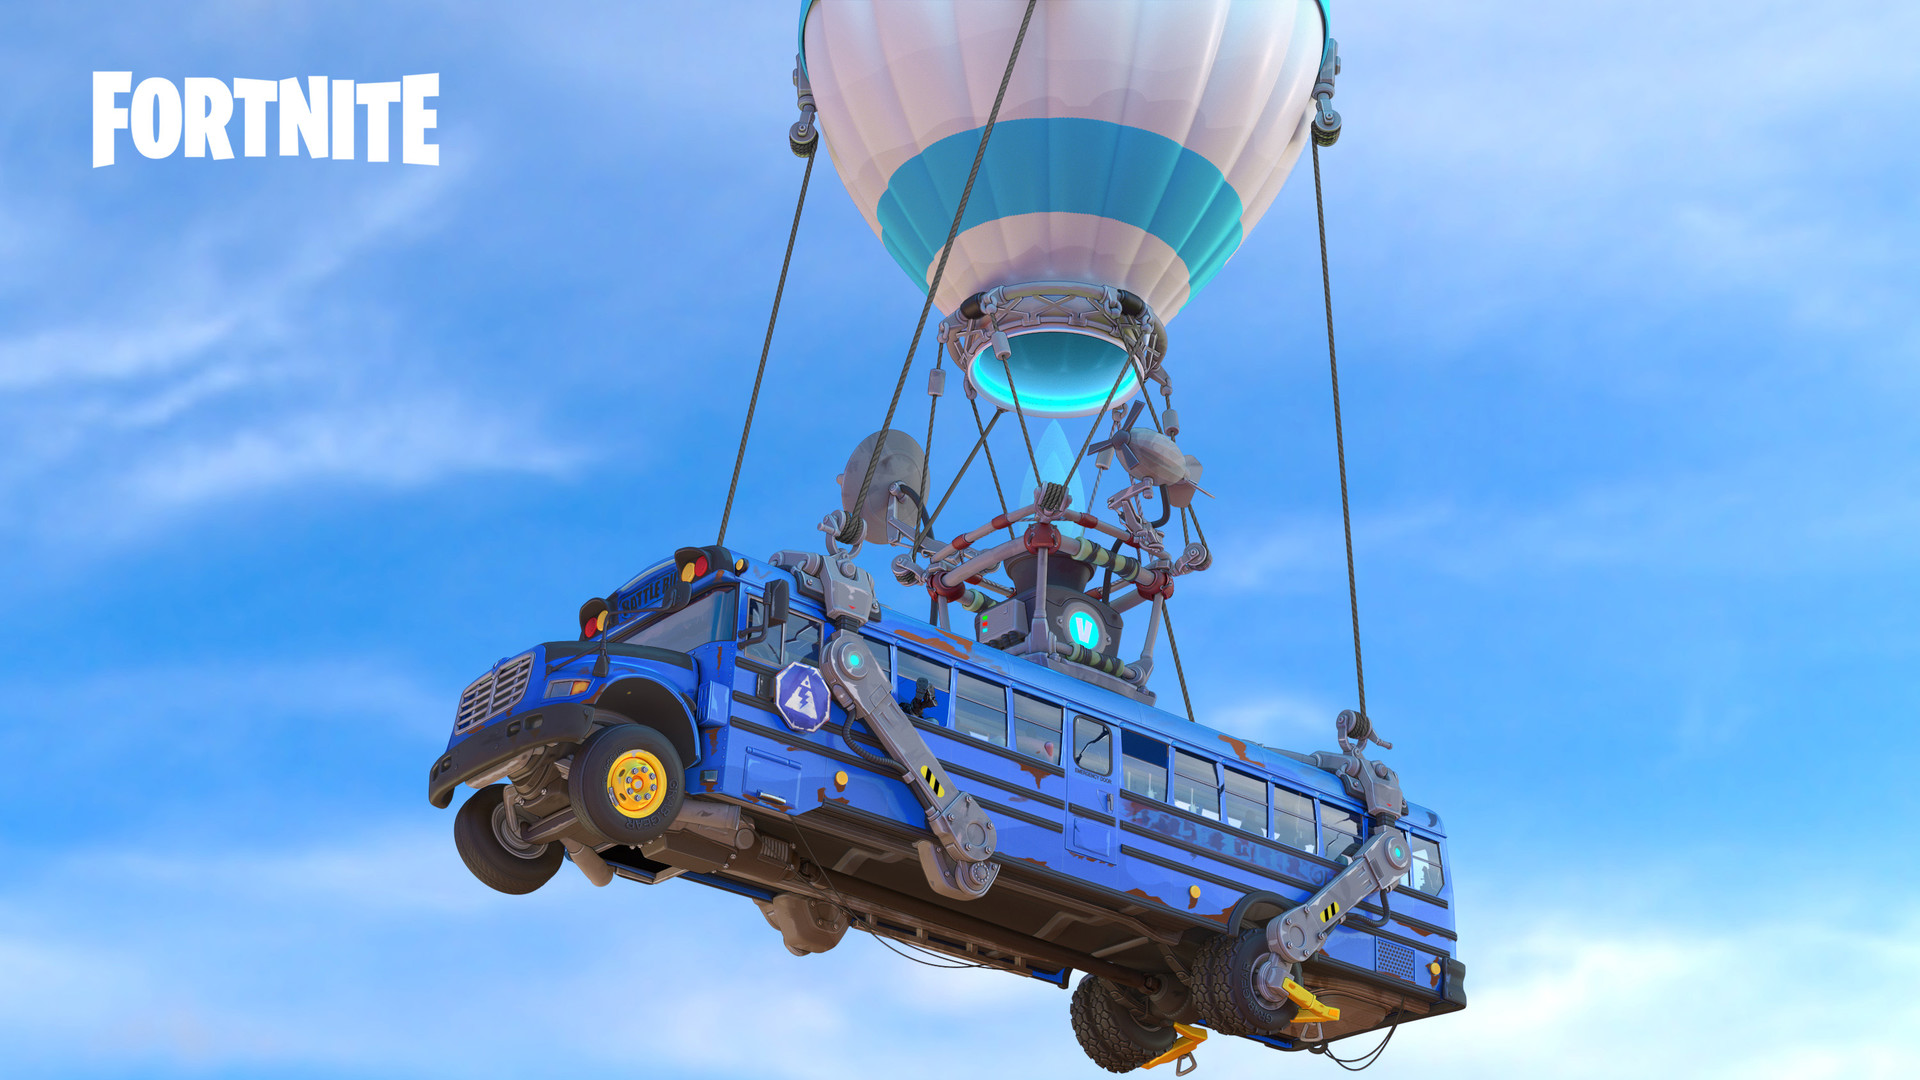 mike-kime-fortnite-battle-bus-concept1.j